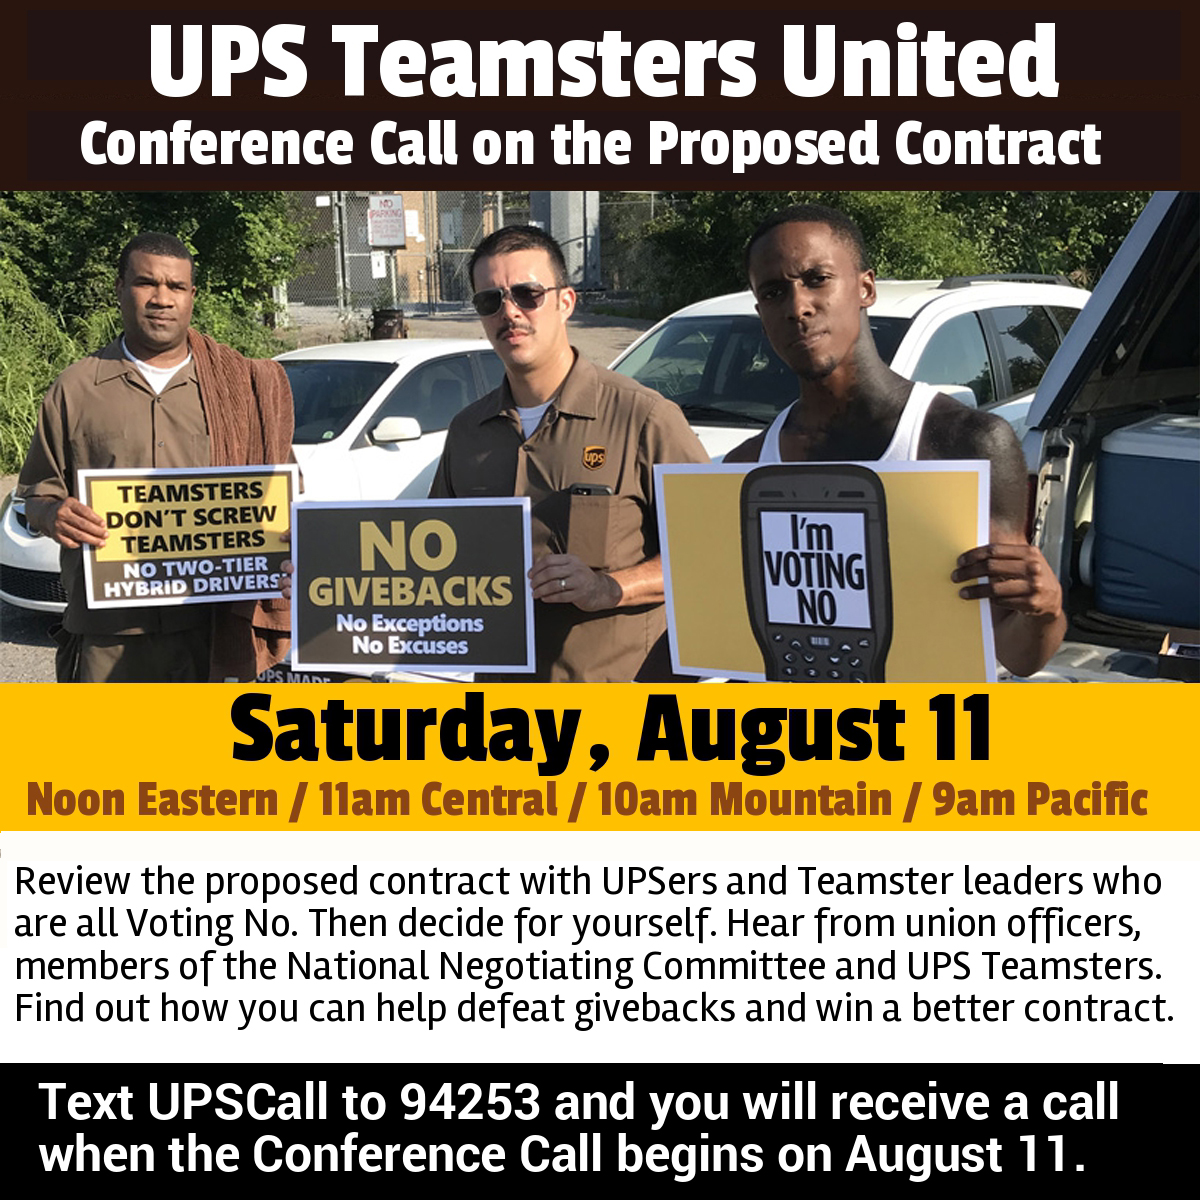 UPS-call-aug-11-sq.jpg